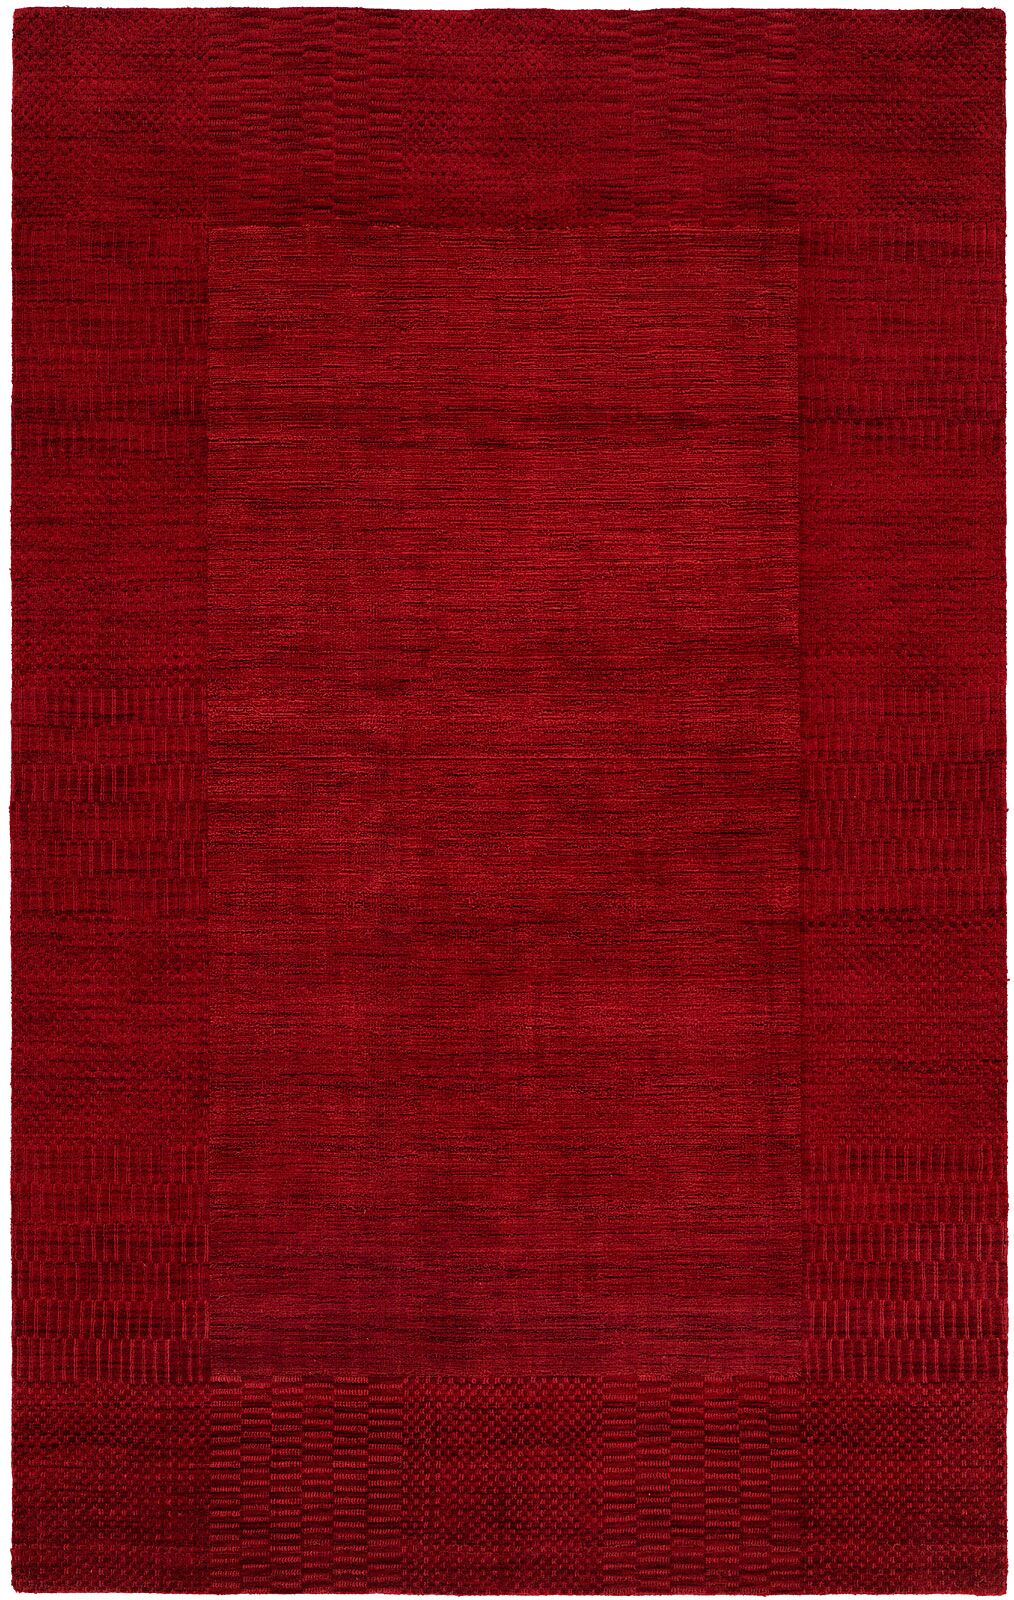 Bera Hand-Woven Red Area Rug Rug Size: 6' x 9'